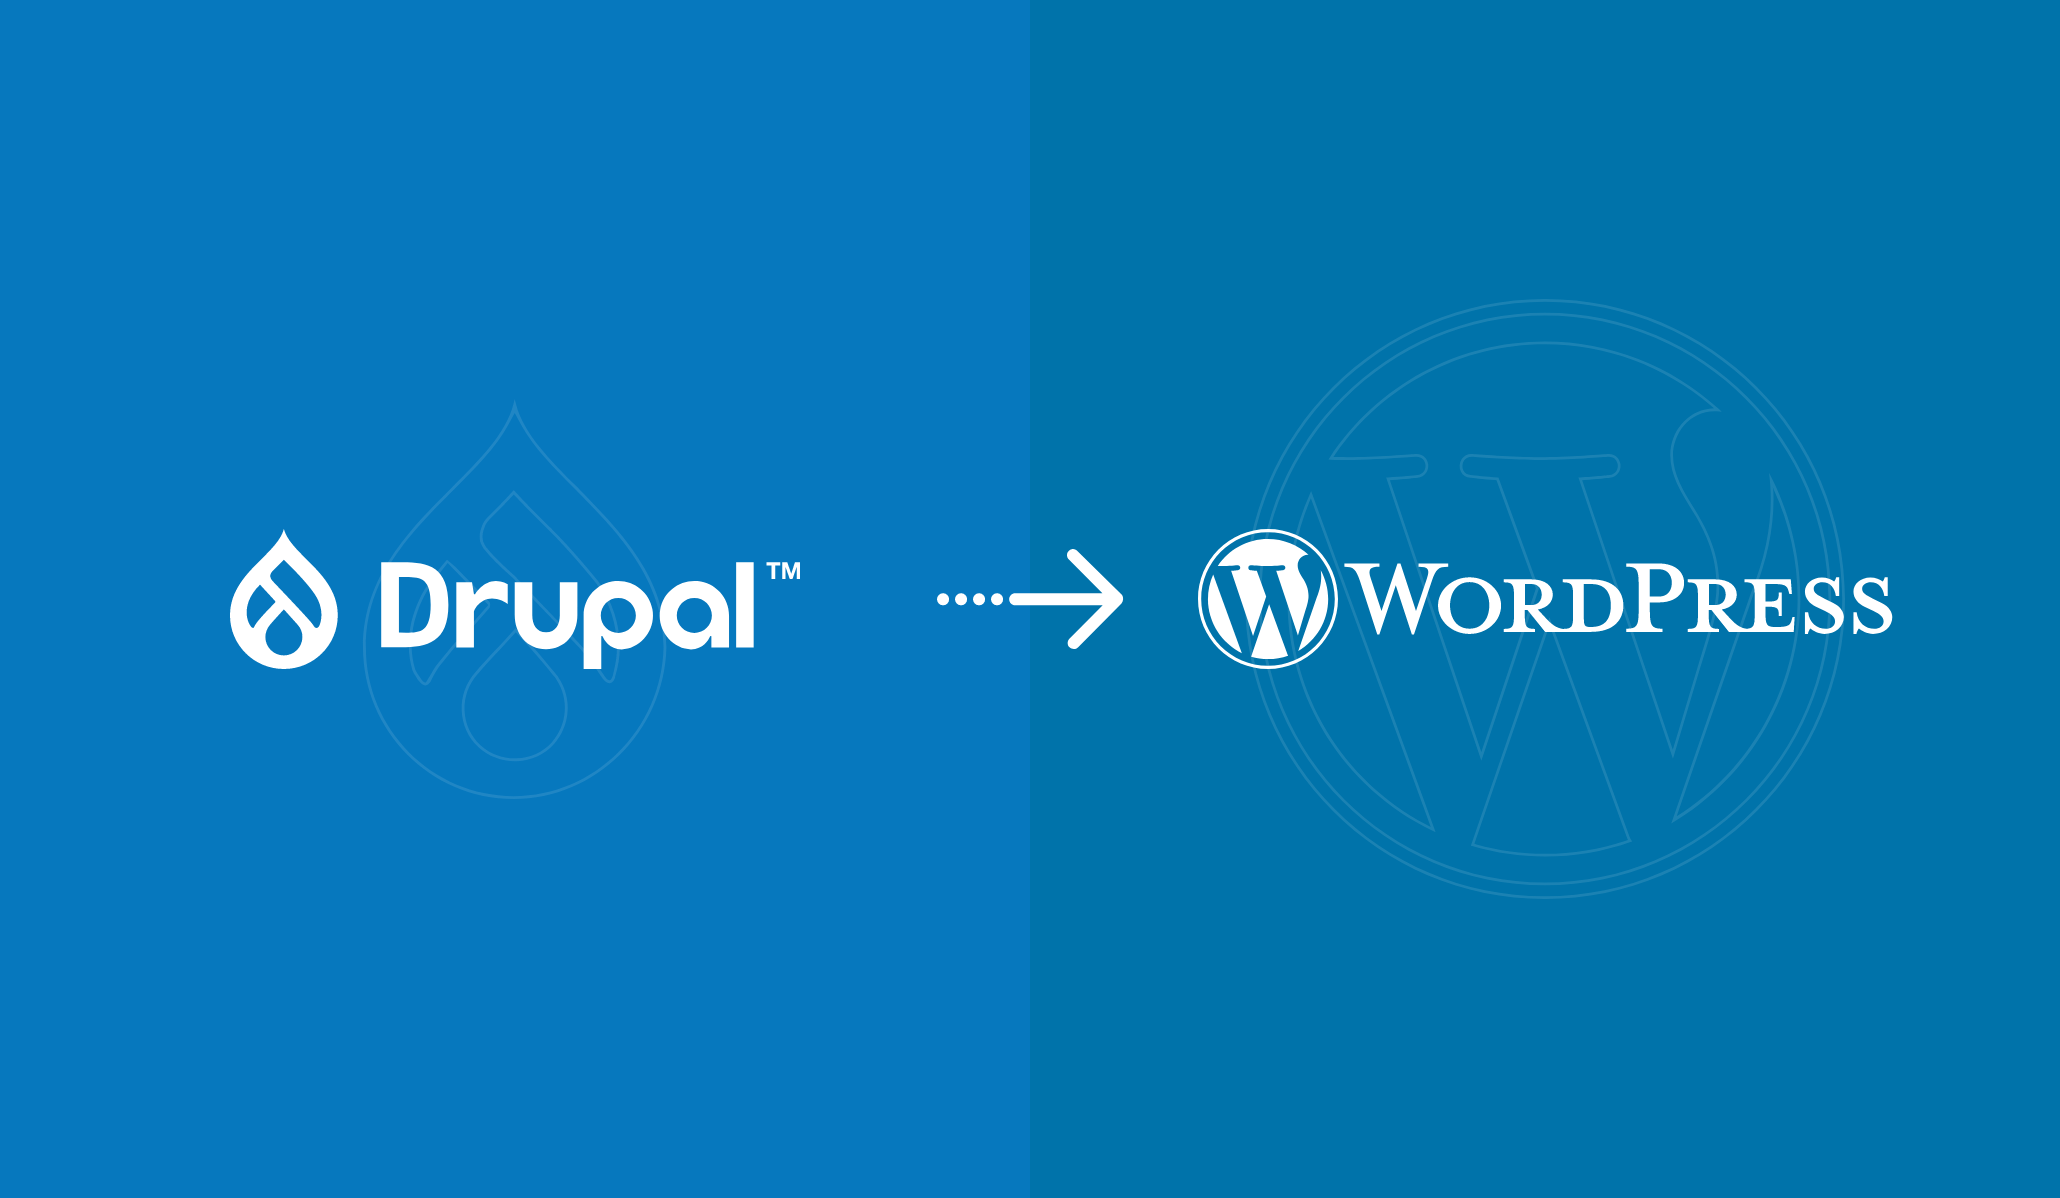 The Complete Step-by-Step Guide to Migrate from Drupal 7 to WordPress